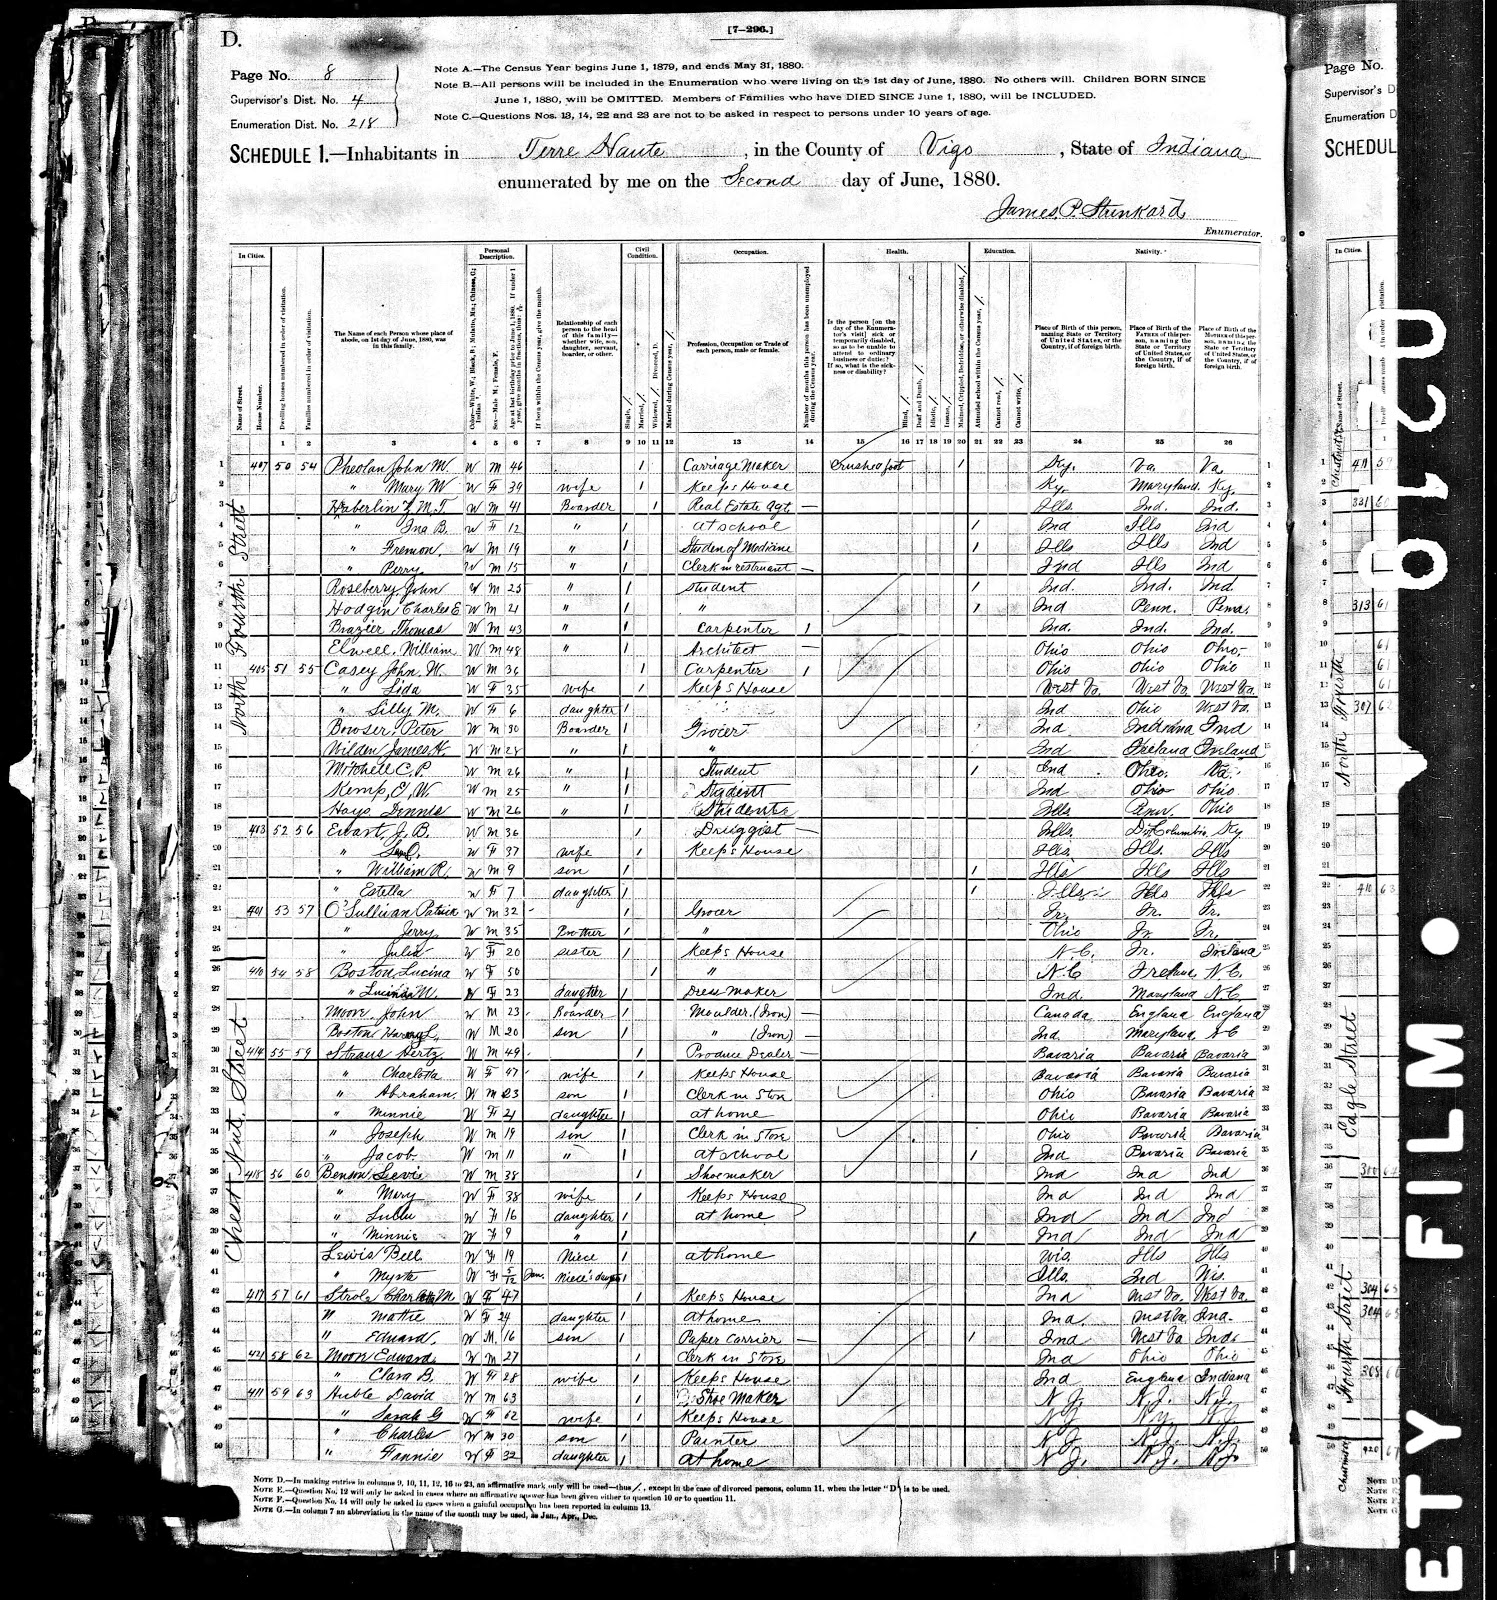 Genea musings 122312 treasure chest thursday 1880 us census record for david auble family aiddatafo Gallery